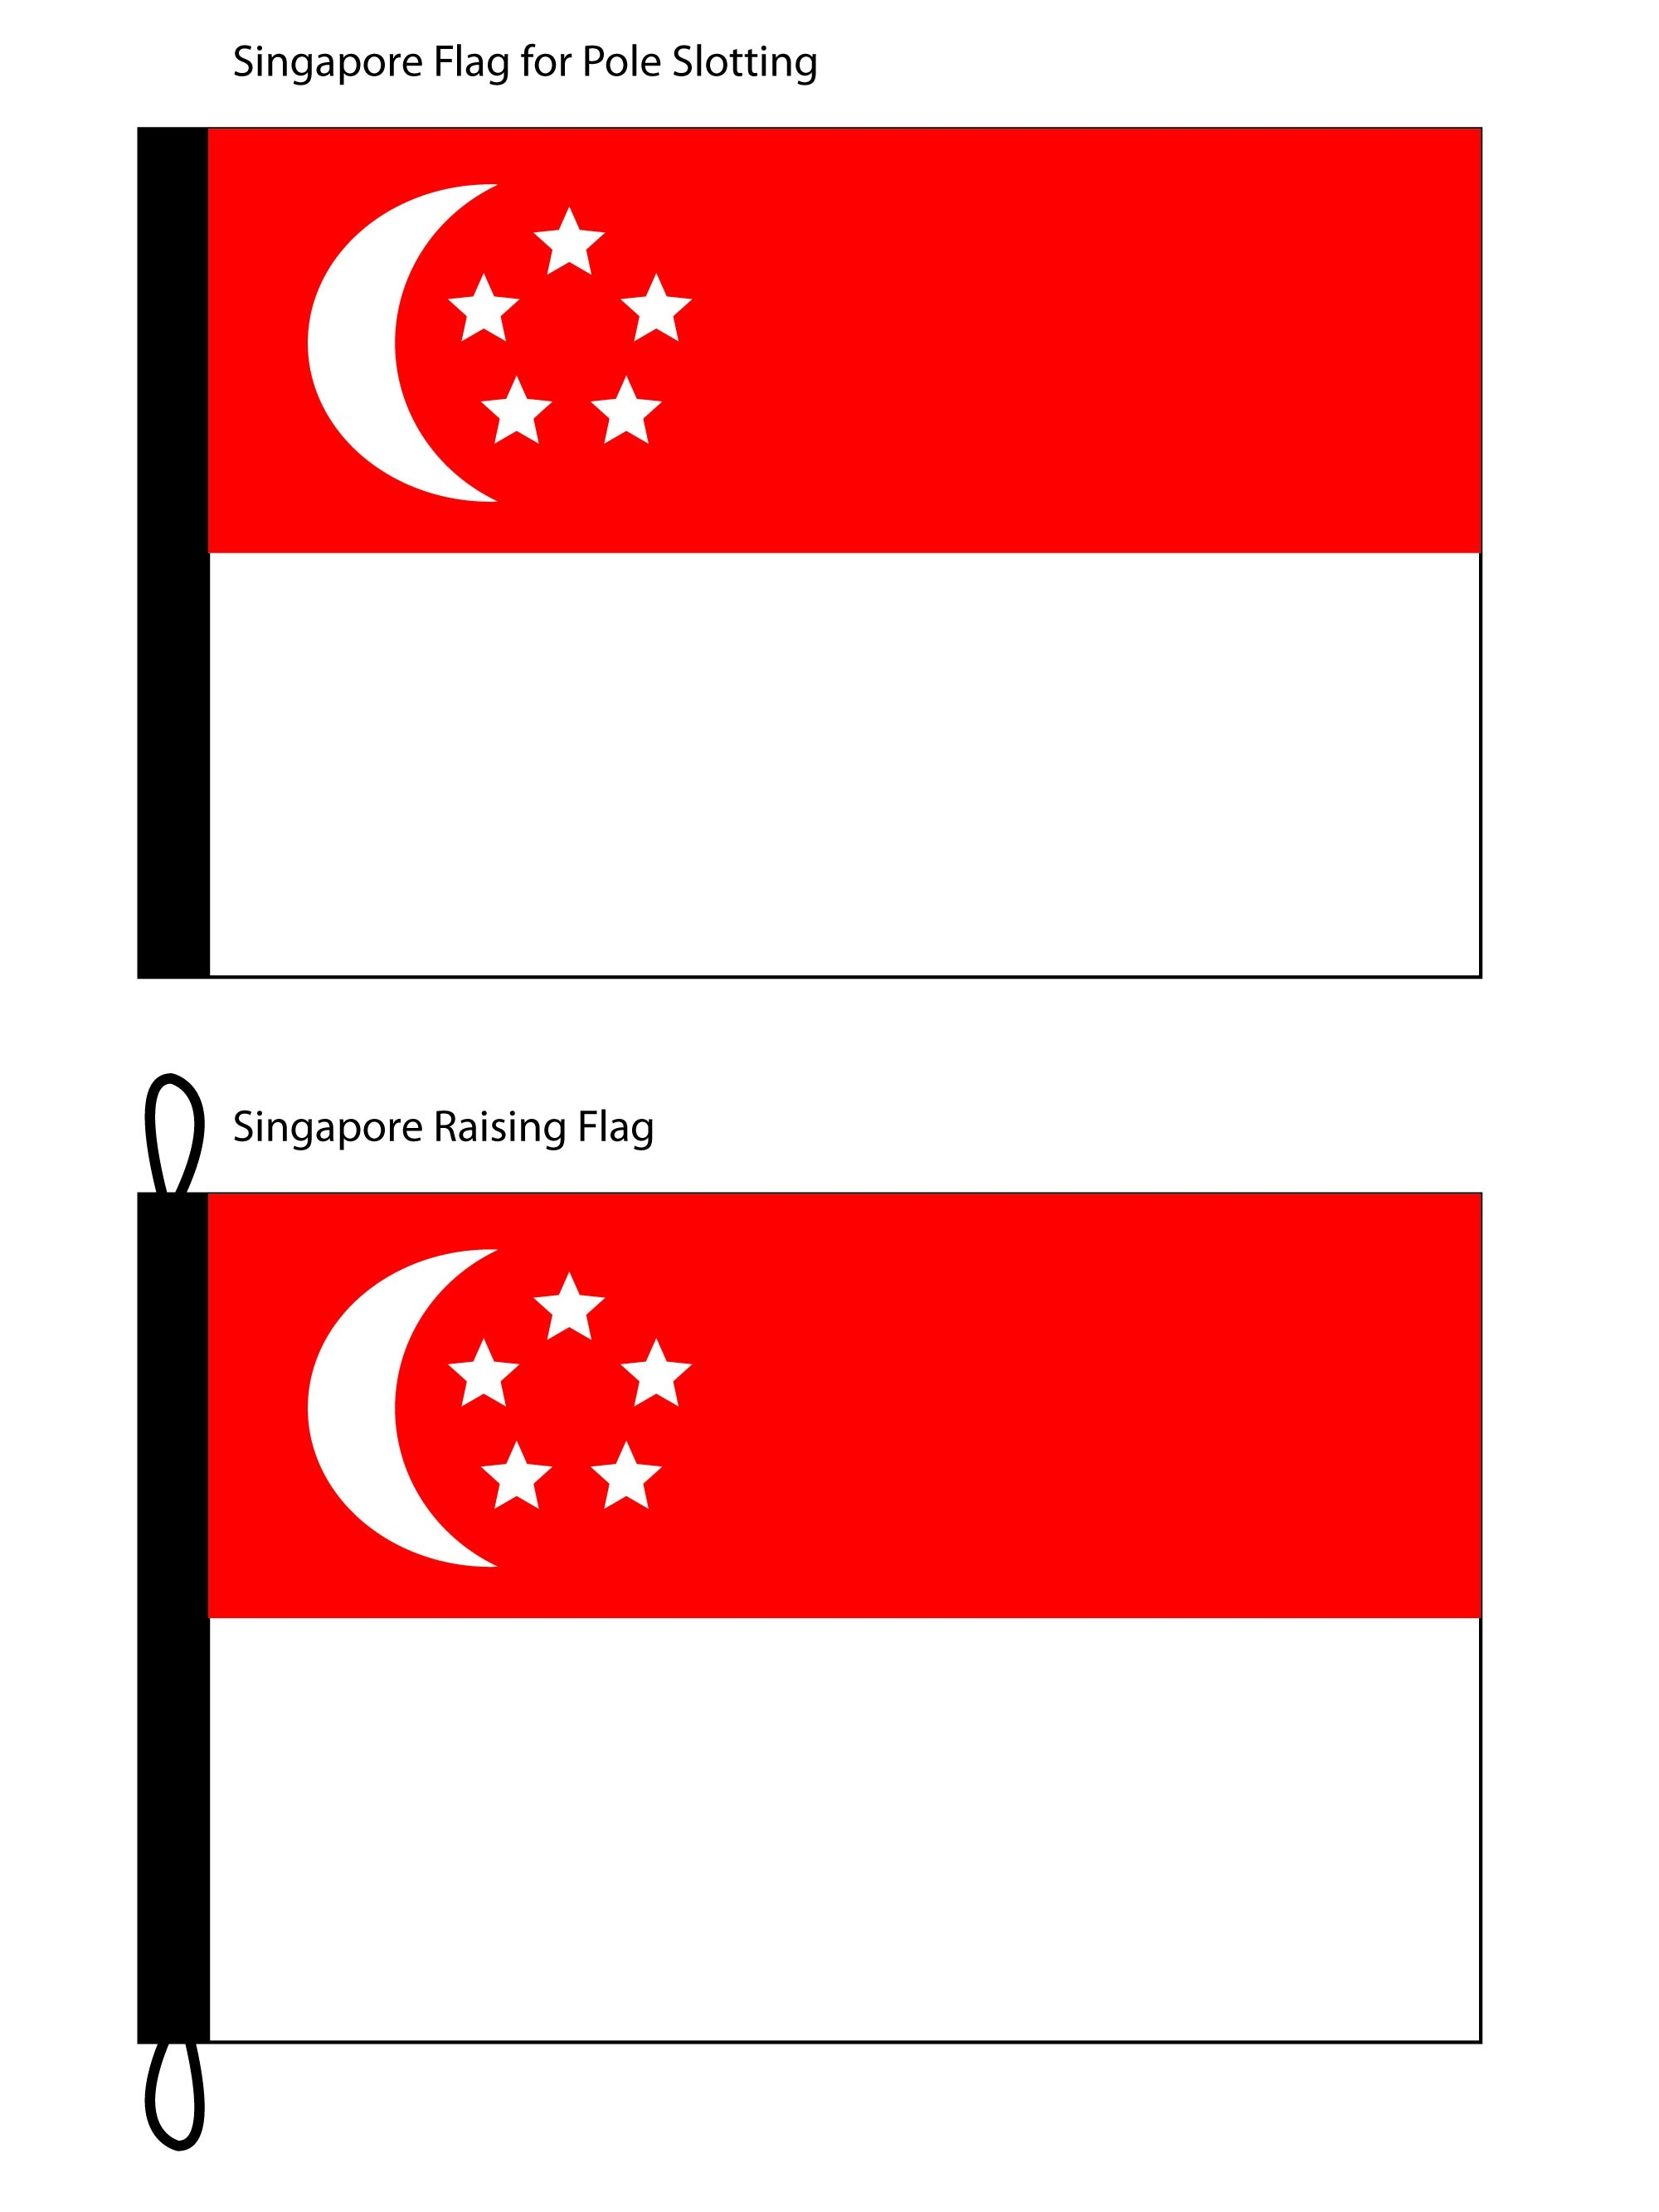 Singapore Flag (Thicker Polyester Fabric) for both pole slotting and flag raising type